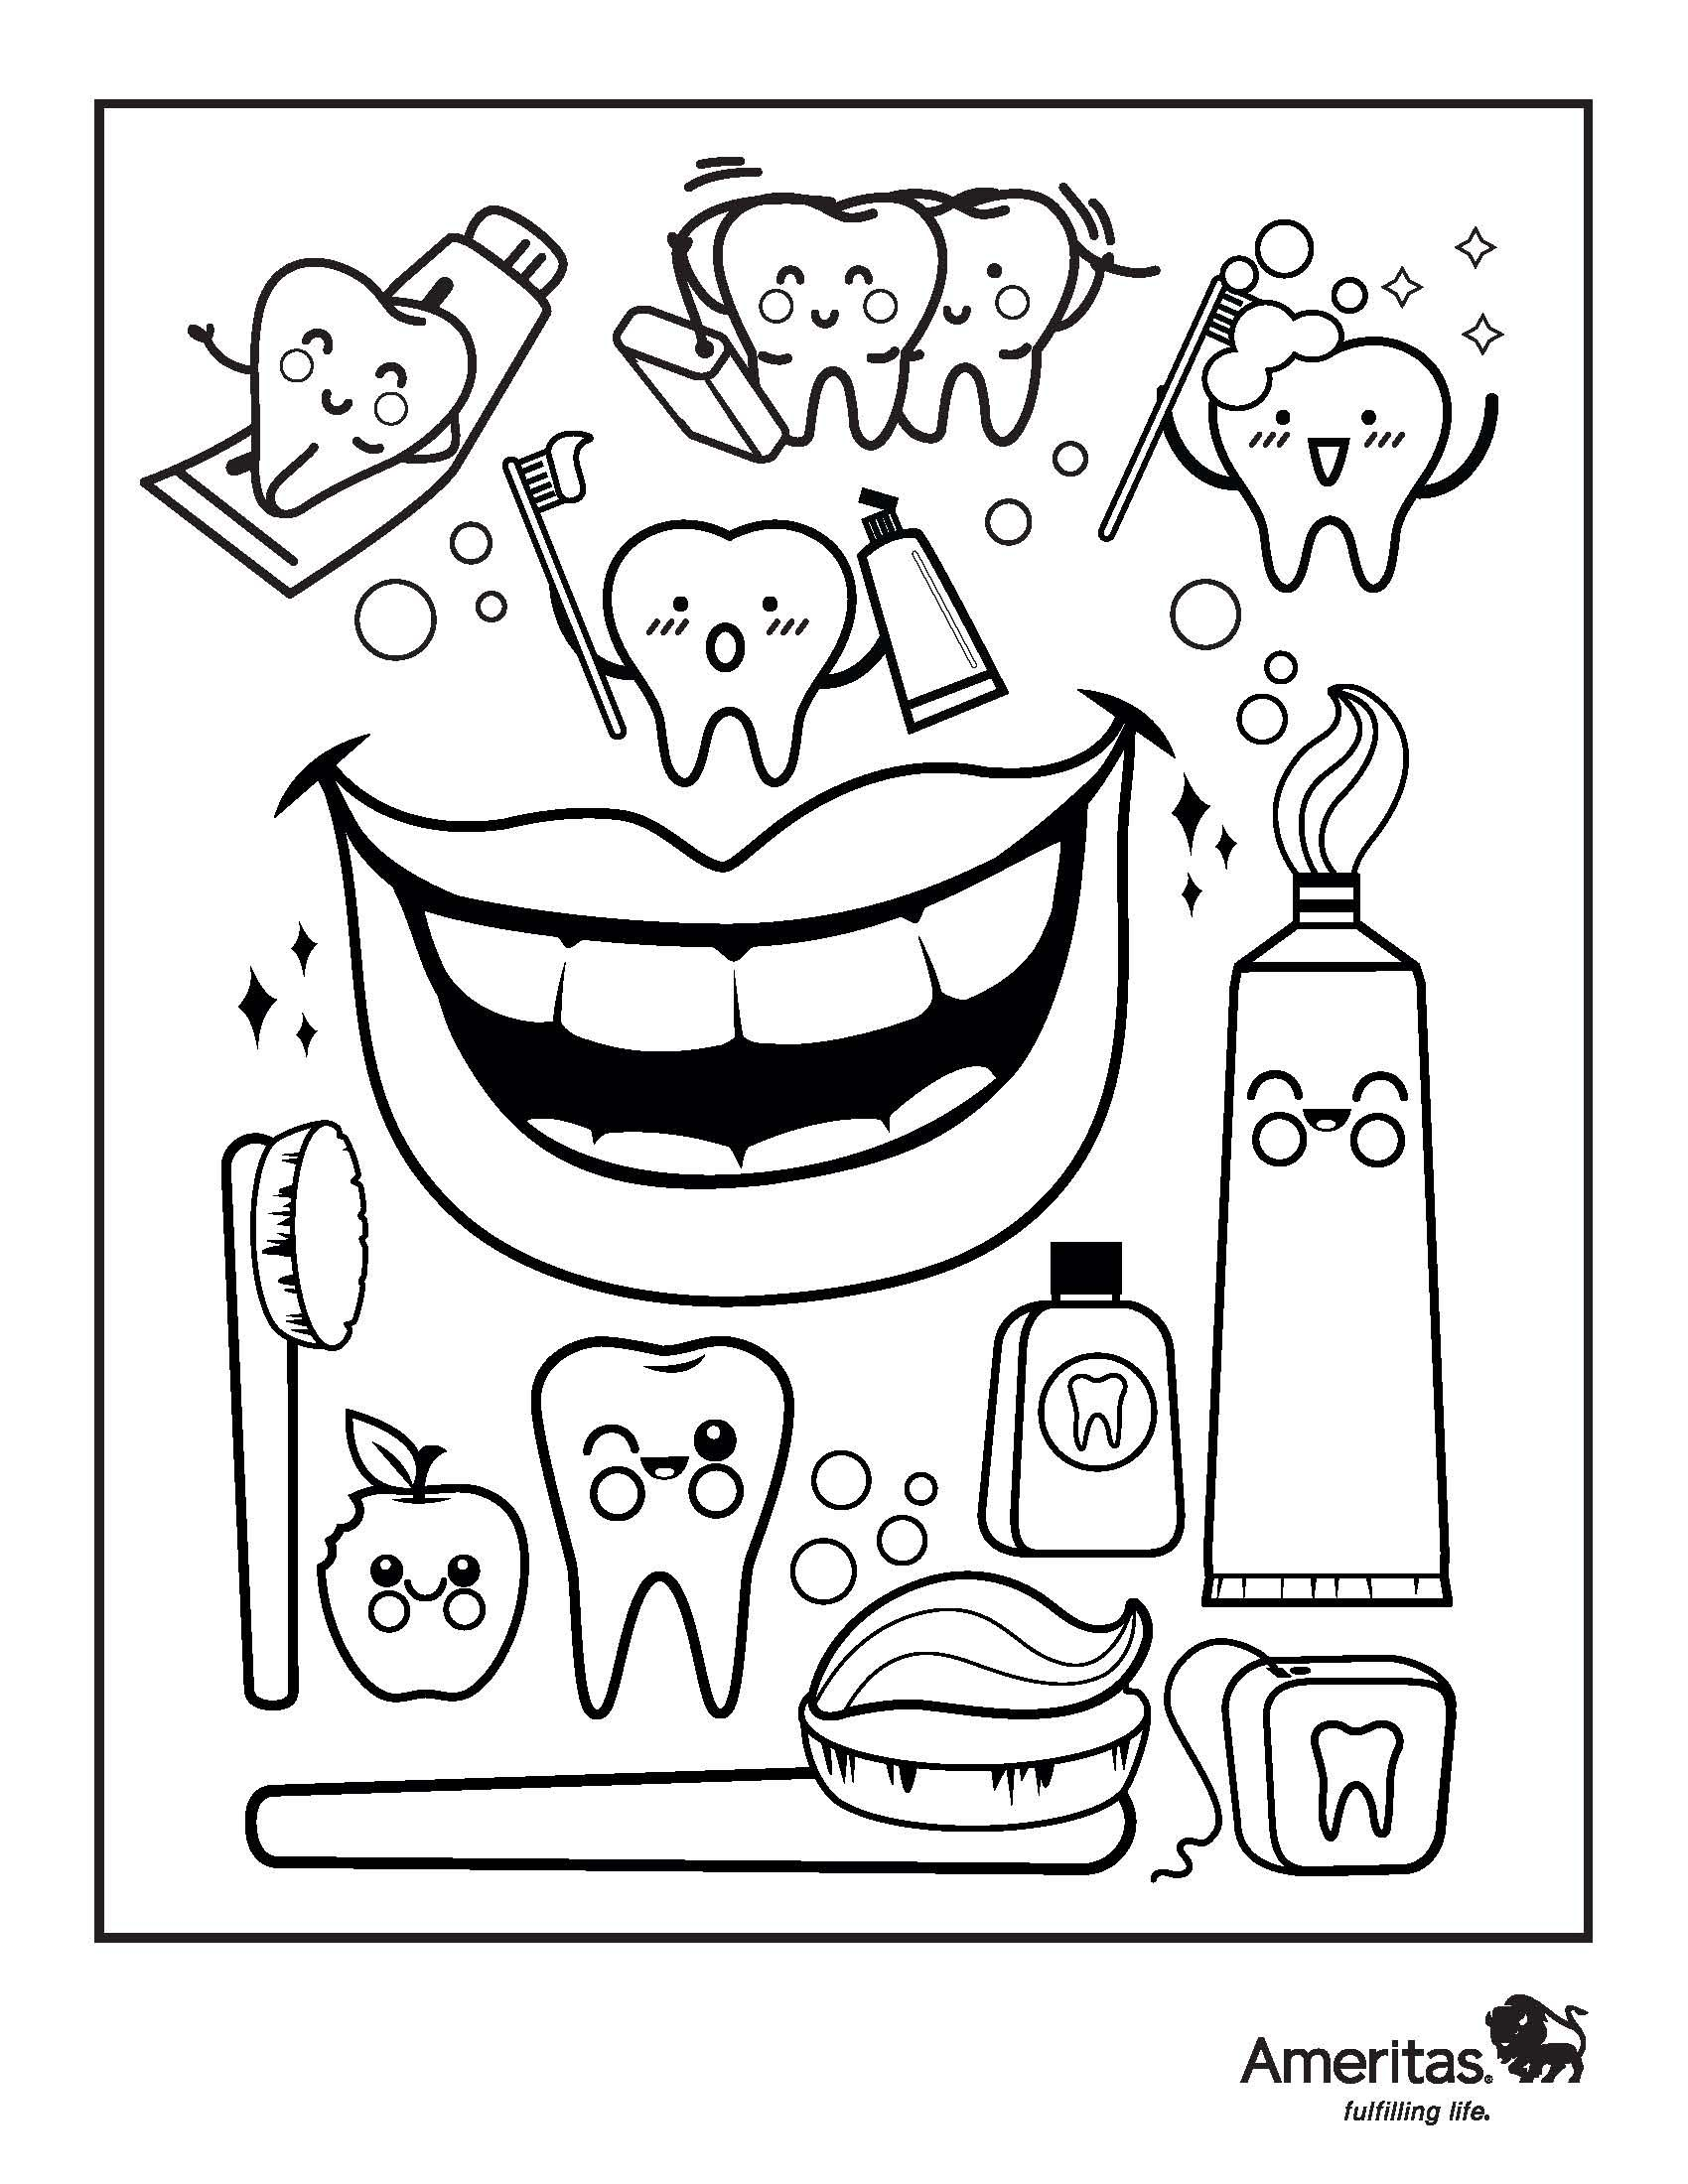 Dentist Coloring Book Page Dental Kids Oral Health Care Dental Health Activities